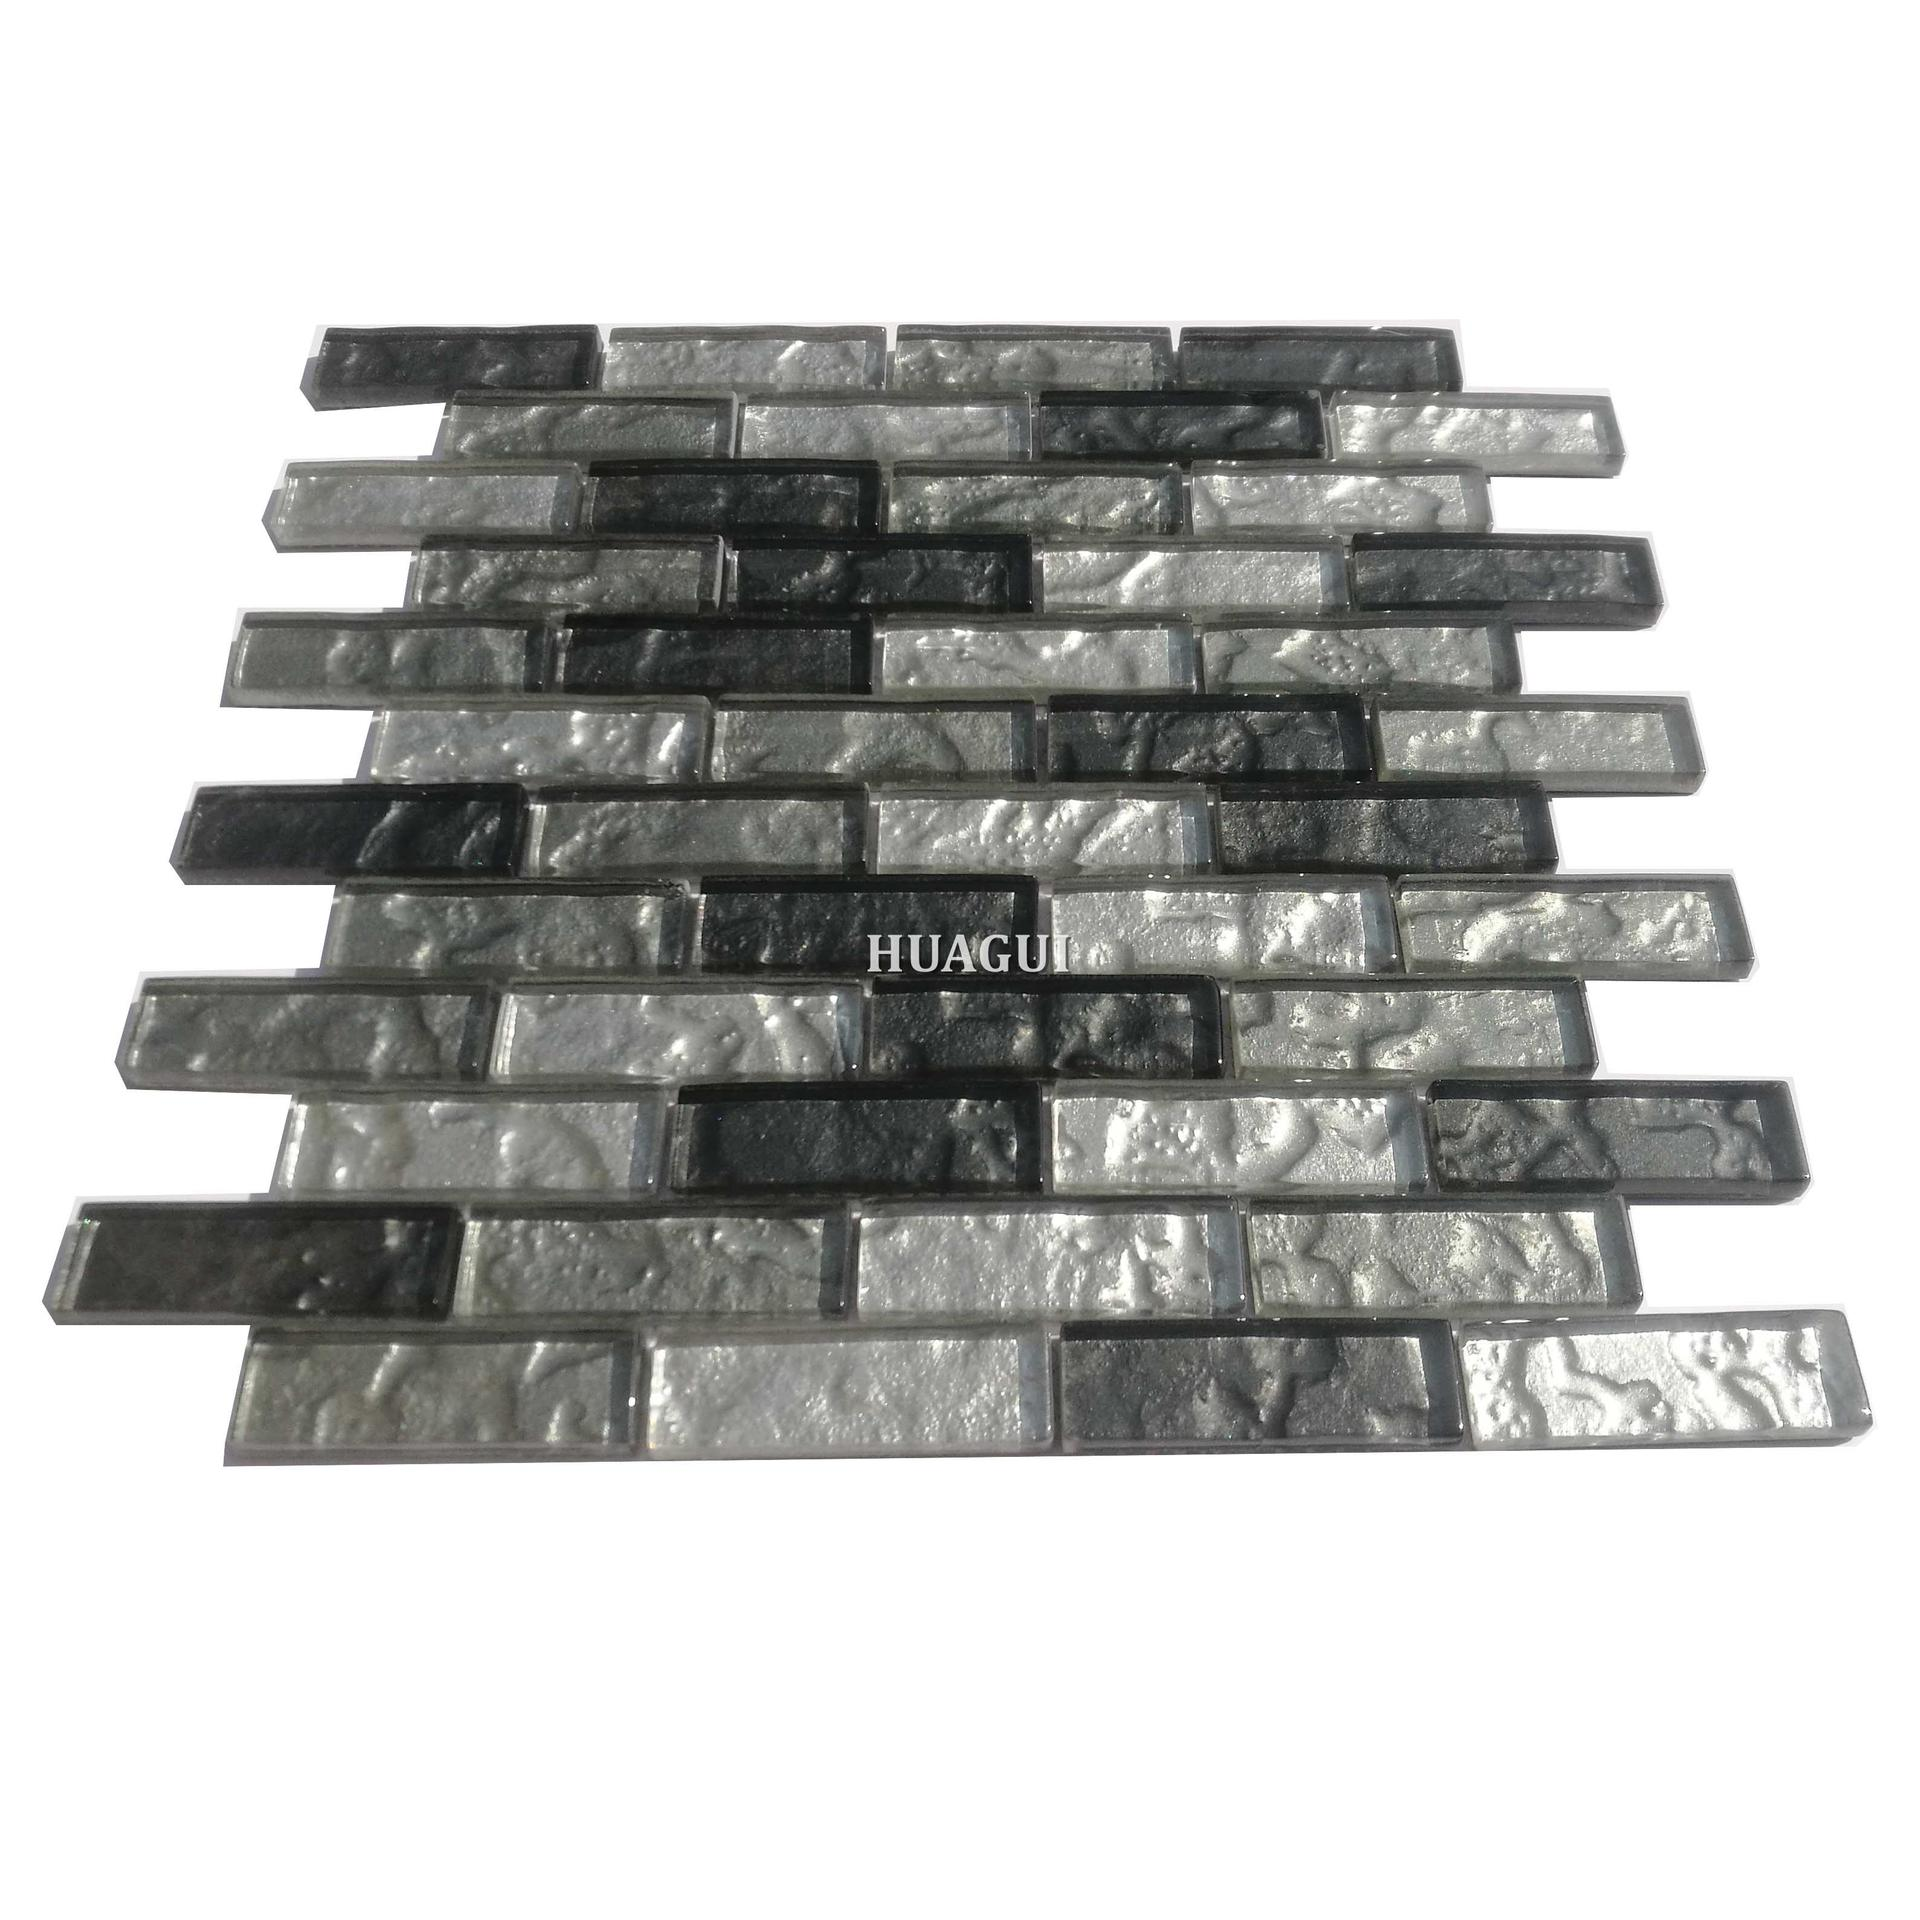 Non-slip black grey backsplash glass tile for wall or floor designs